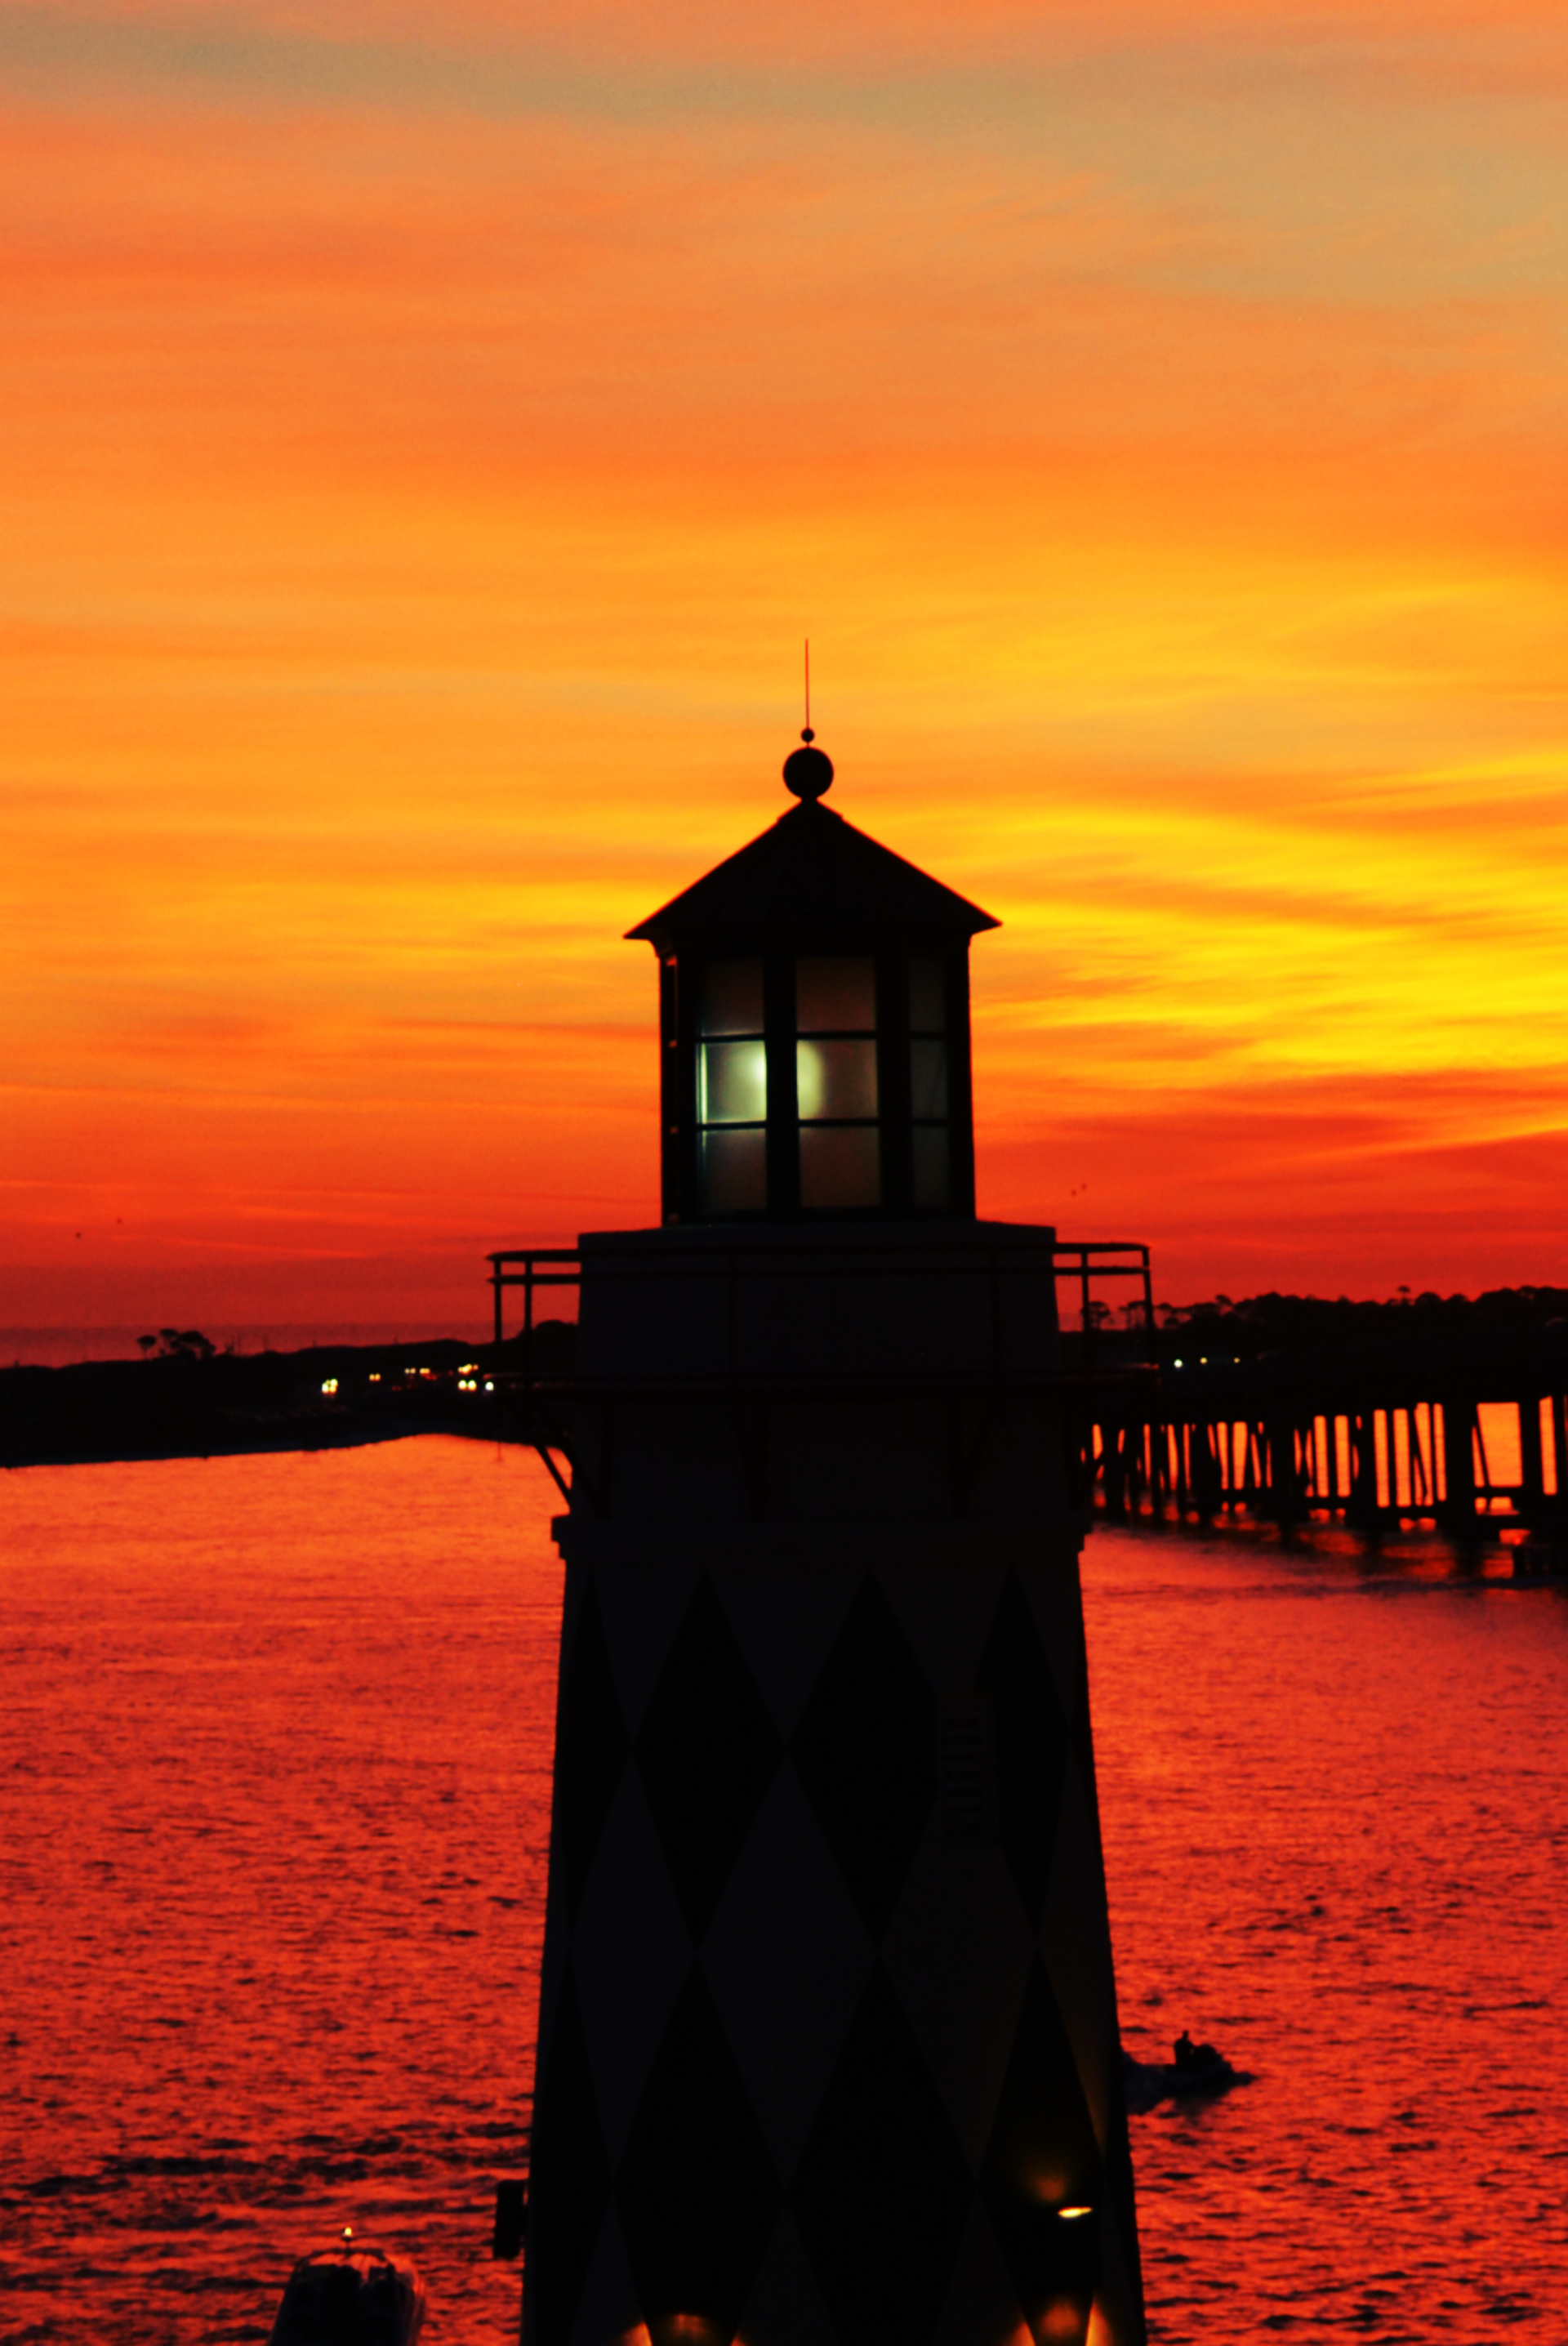 View of lighthouse at sunset